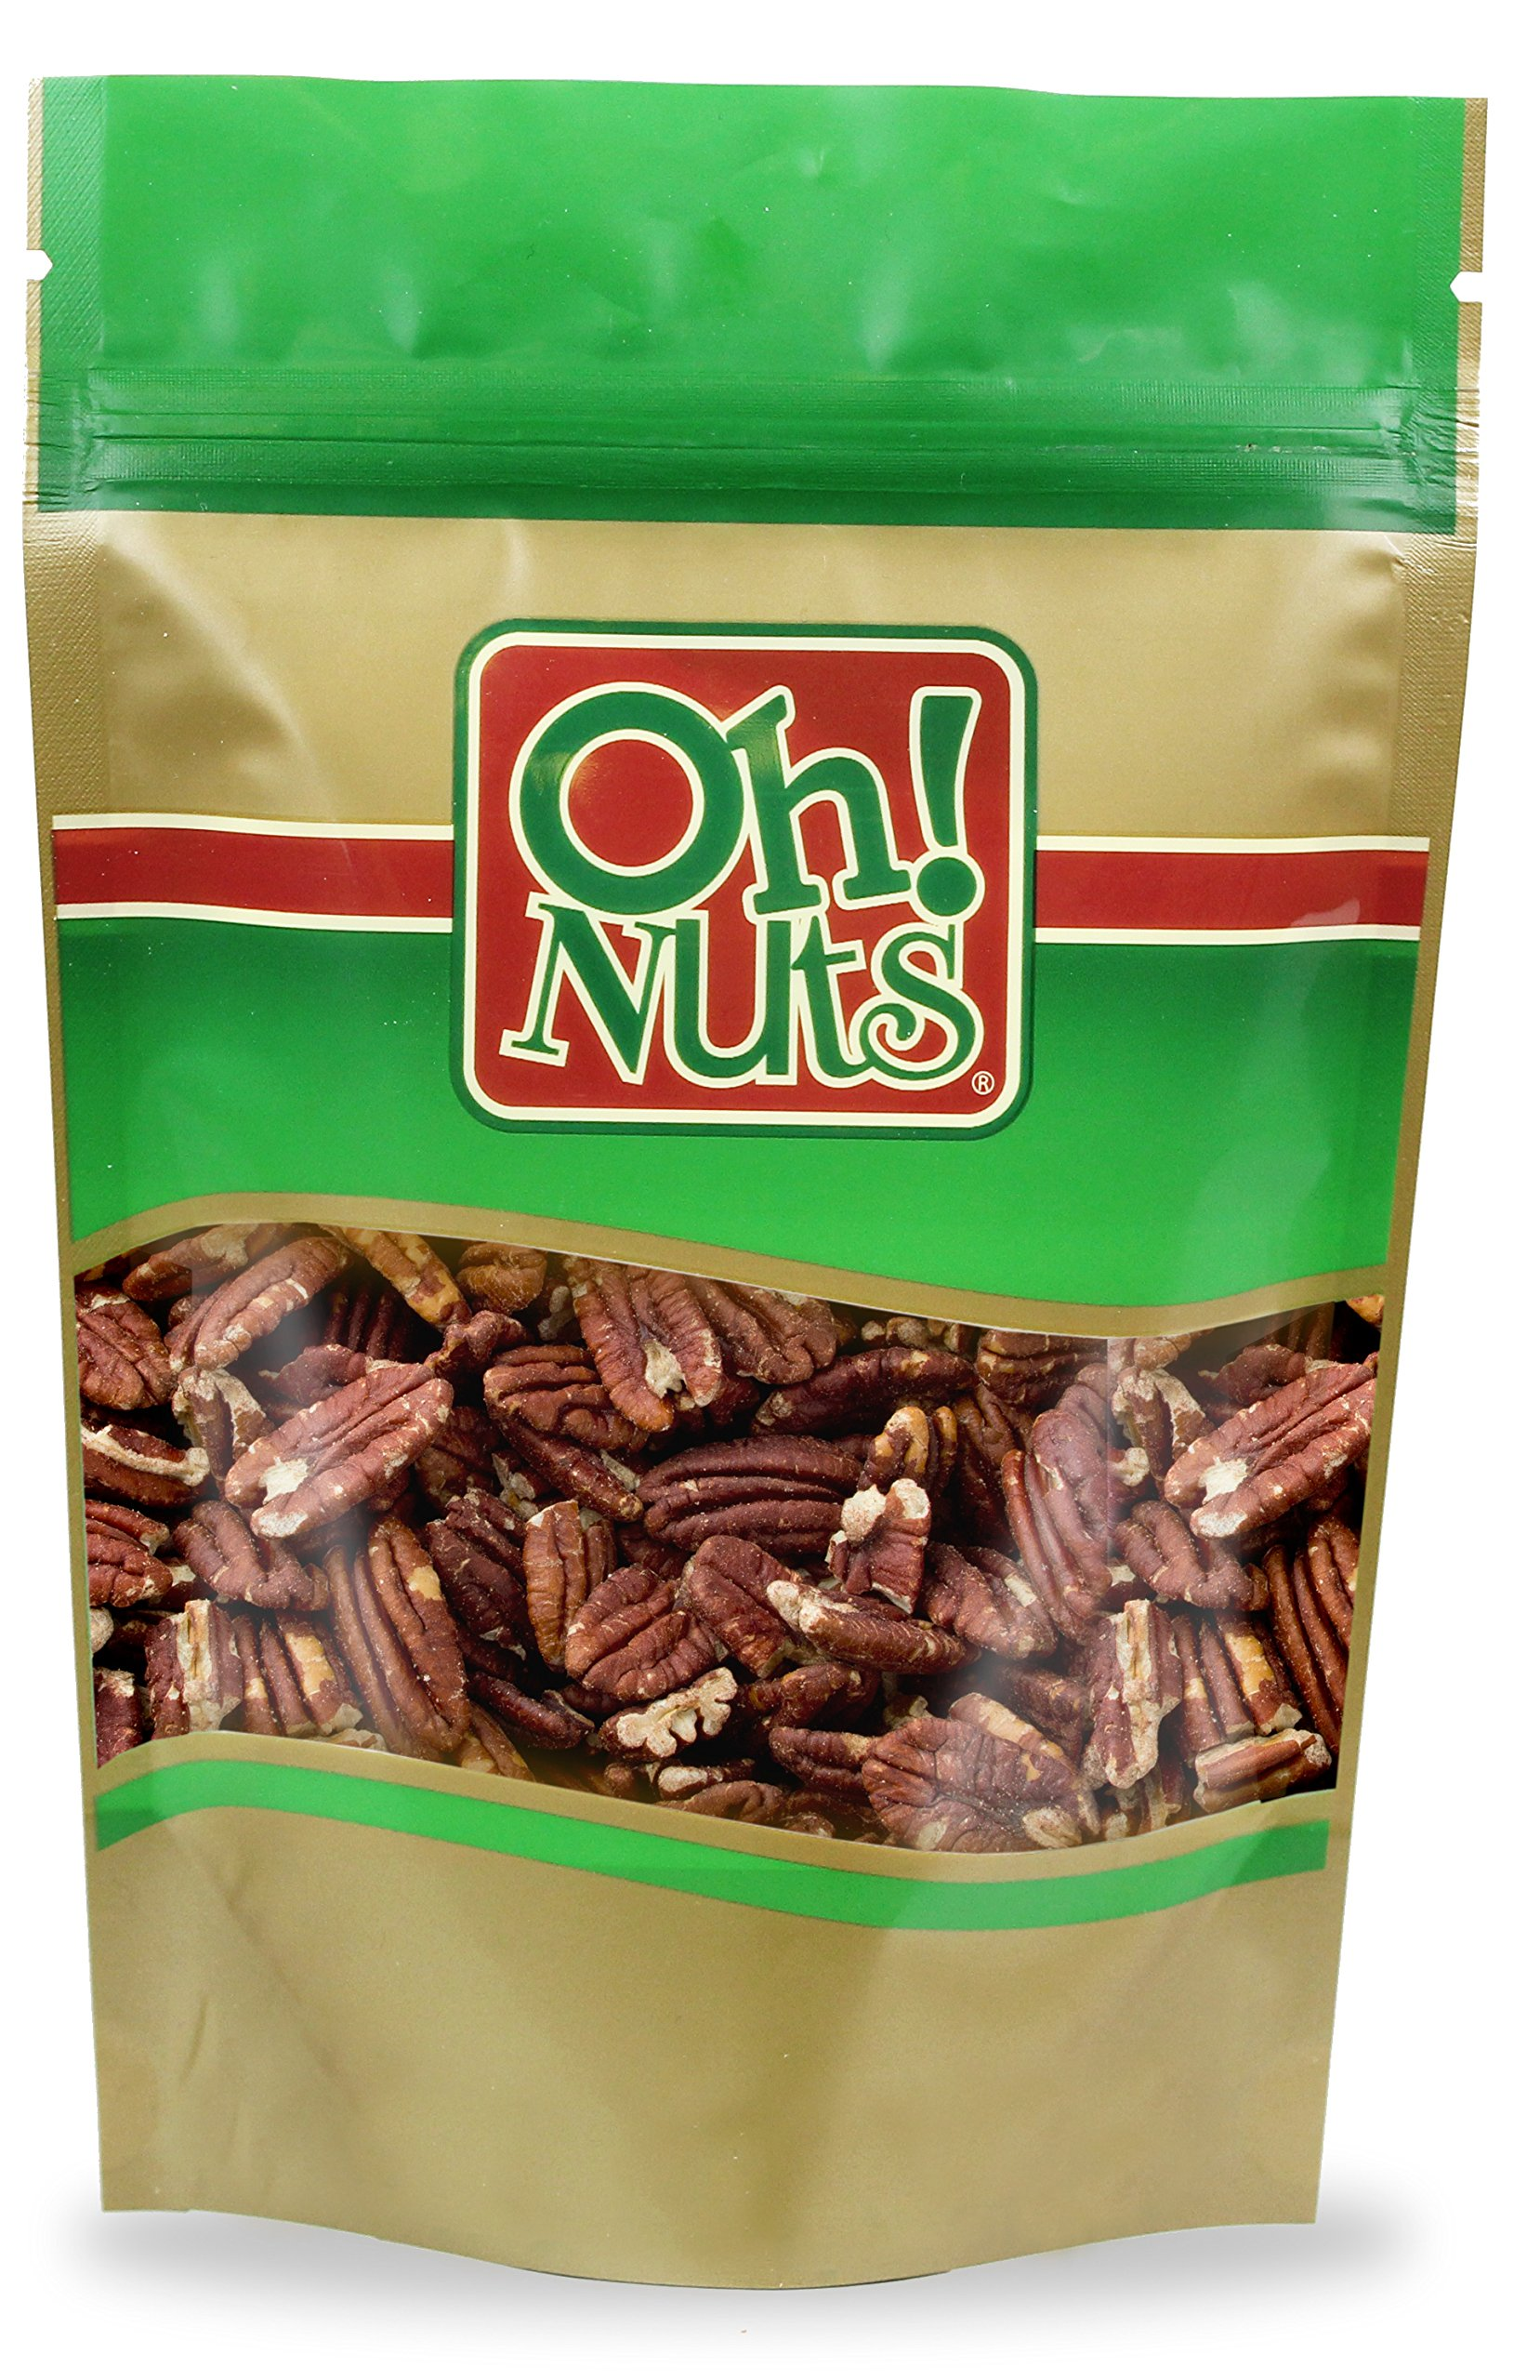 Pecans Dry Roasted Unsalted, Pecans NO OIL, NO SALT - Oh! Nuts (2 LB Pecans Dry Roasted Unsalted)